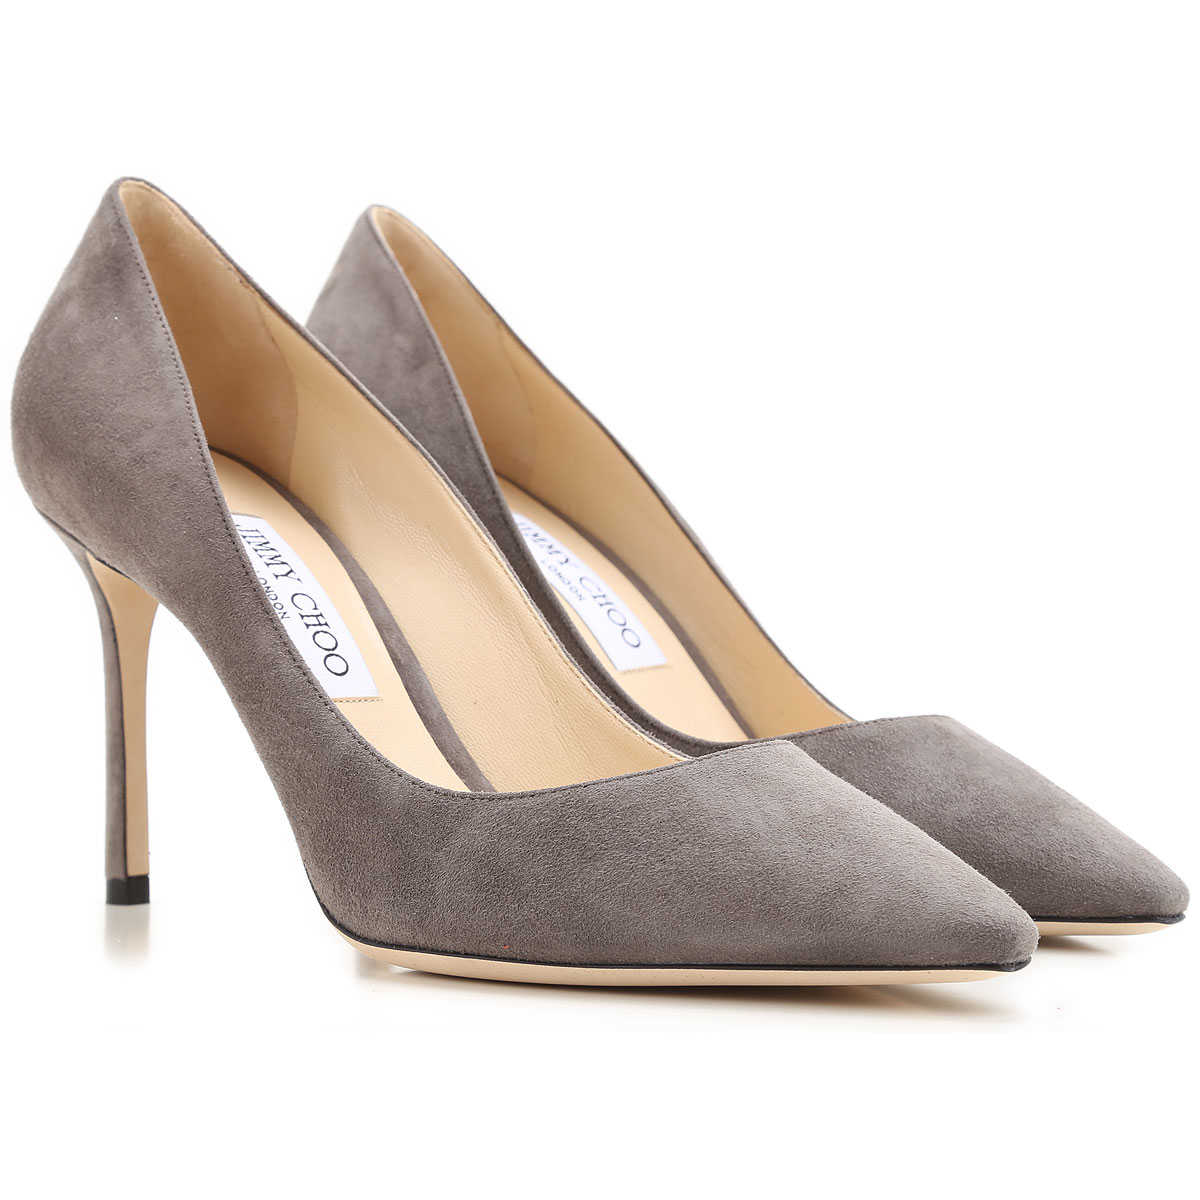 Jimmy Choo Pumps & High Heels for Women Taupe Grey USA - GOOFASH